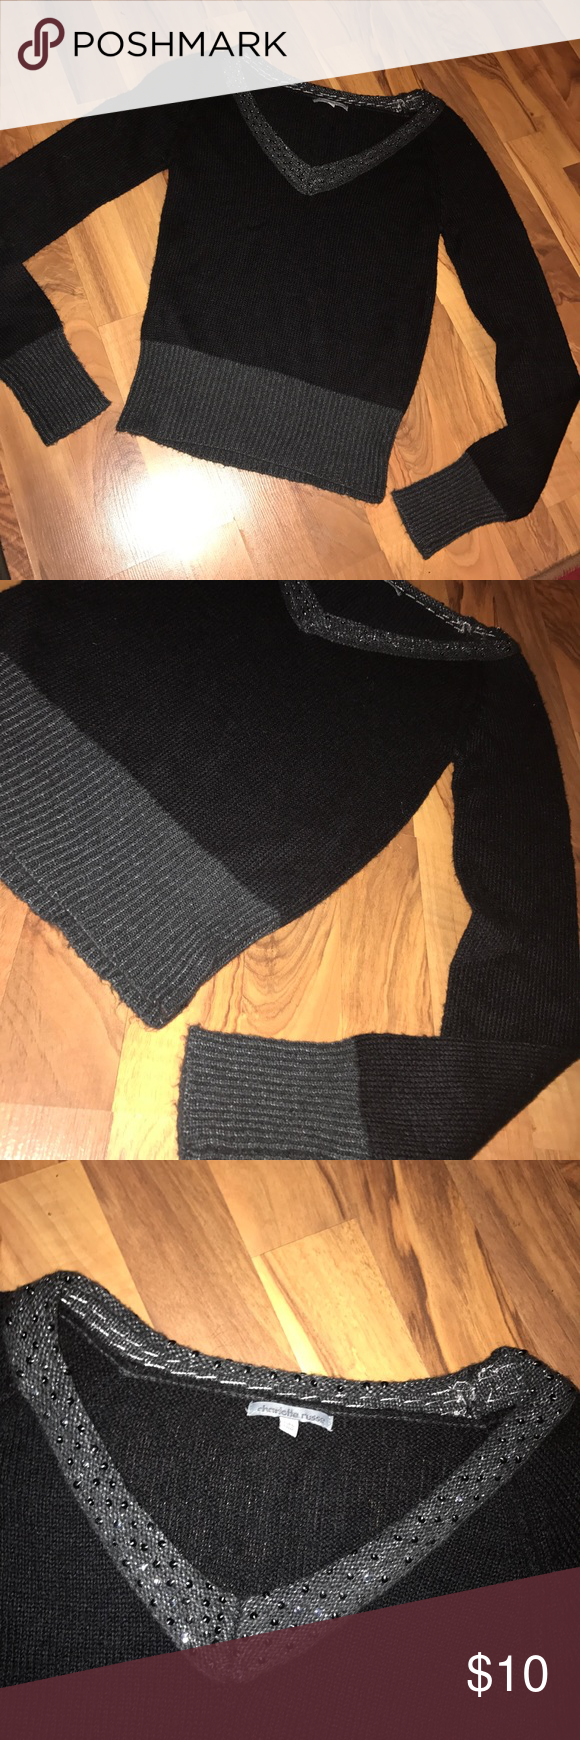 "Black & gray ribbed sweater with sequins Pretty black and gray ribbed v-neck sweater with sequins around the neck. Size S. Good used condition. 70% acrylic 30% nylon. 16"" from armpit to armpit, 14"" from armpit to hem. Charlotte Russe Sweaters V-Necks"